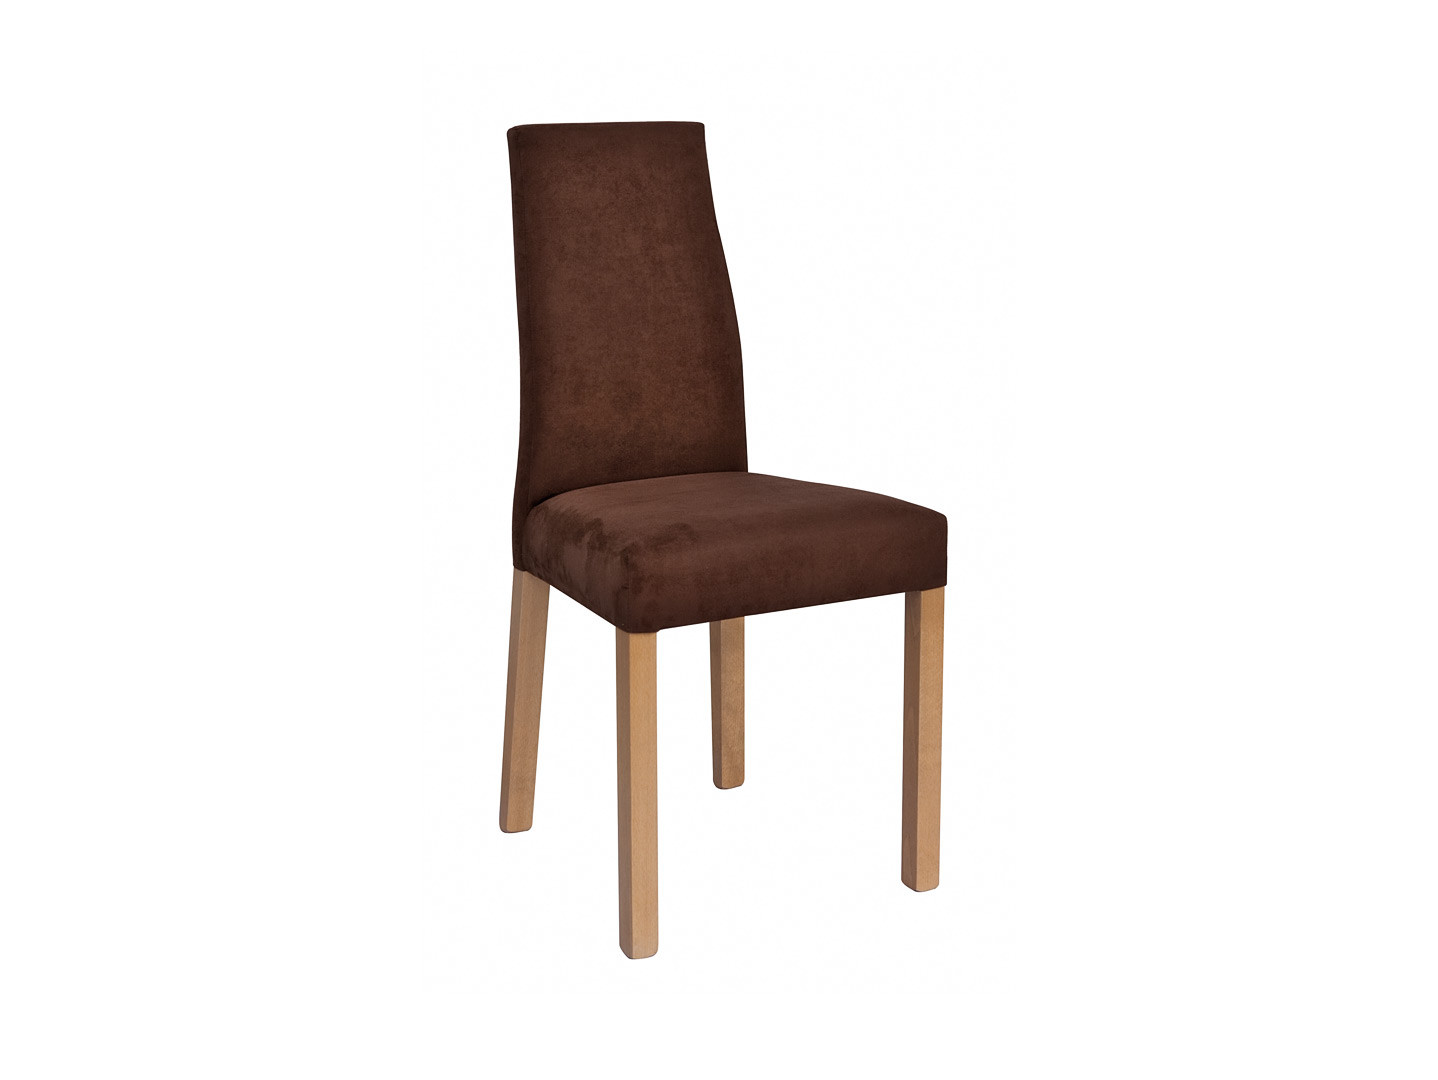 data/Raflo/RAFLO CHAIR TYPE 2.jpg